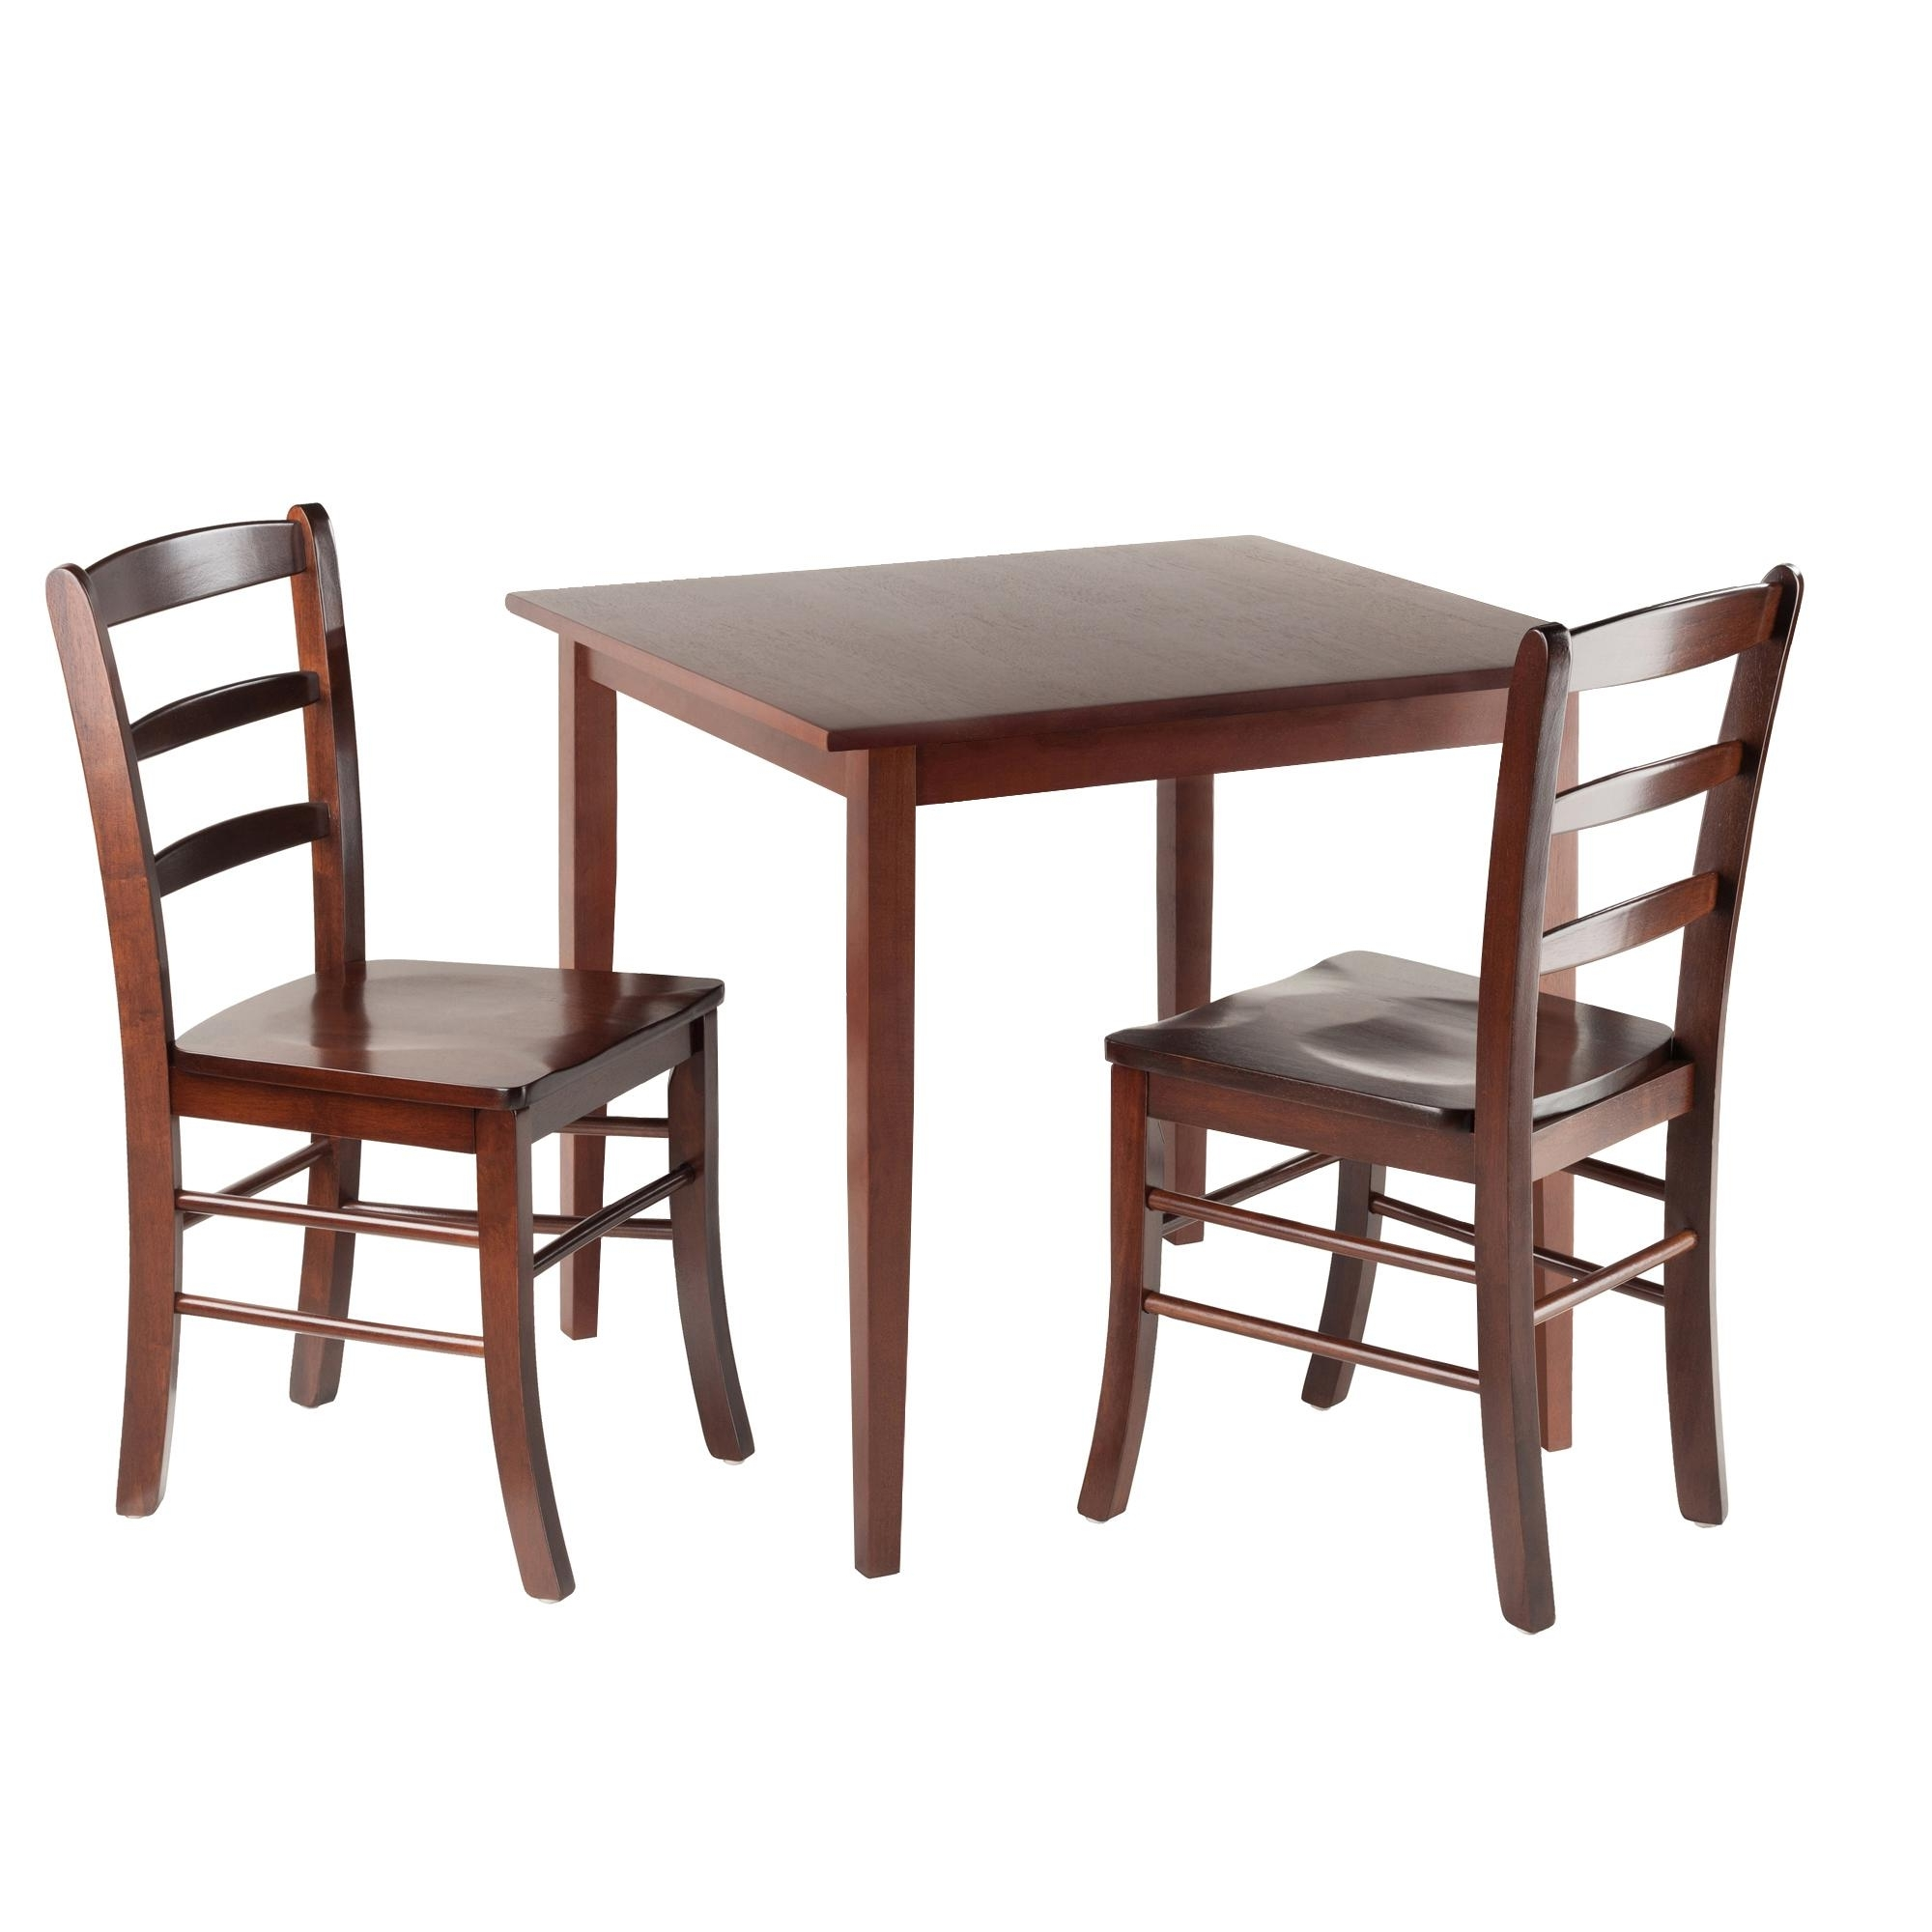 Amazon – Winsome Groveland Square Dining Table With 2 Chairs, 3 Inside Trendy Kitchen Dining Tables And Chairs (View 14 of 25)